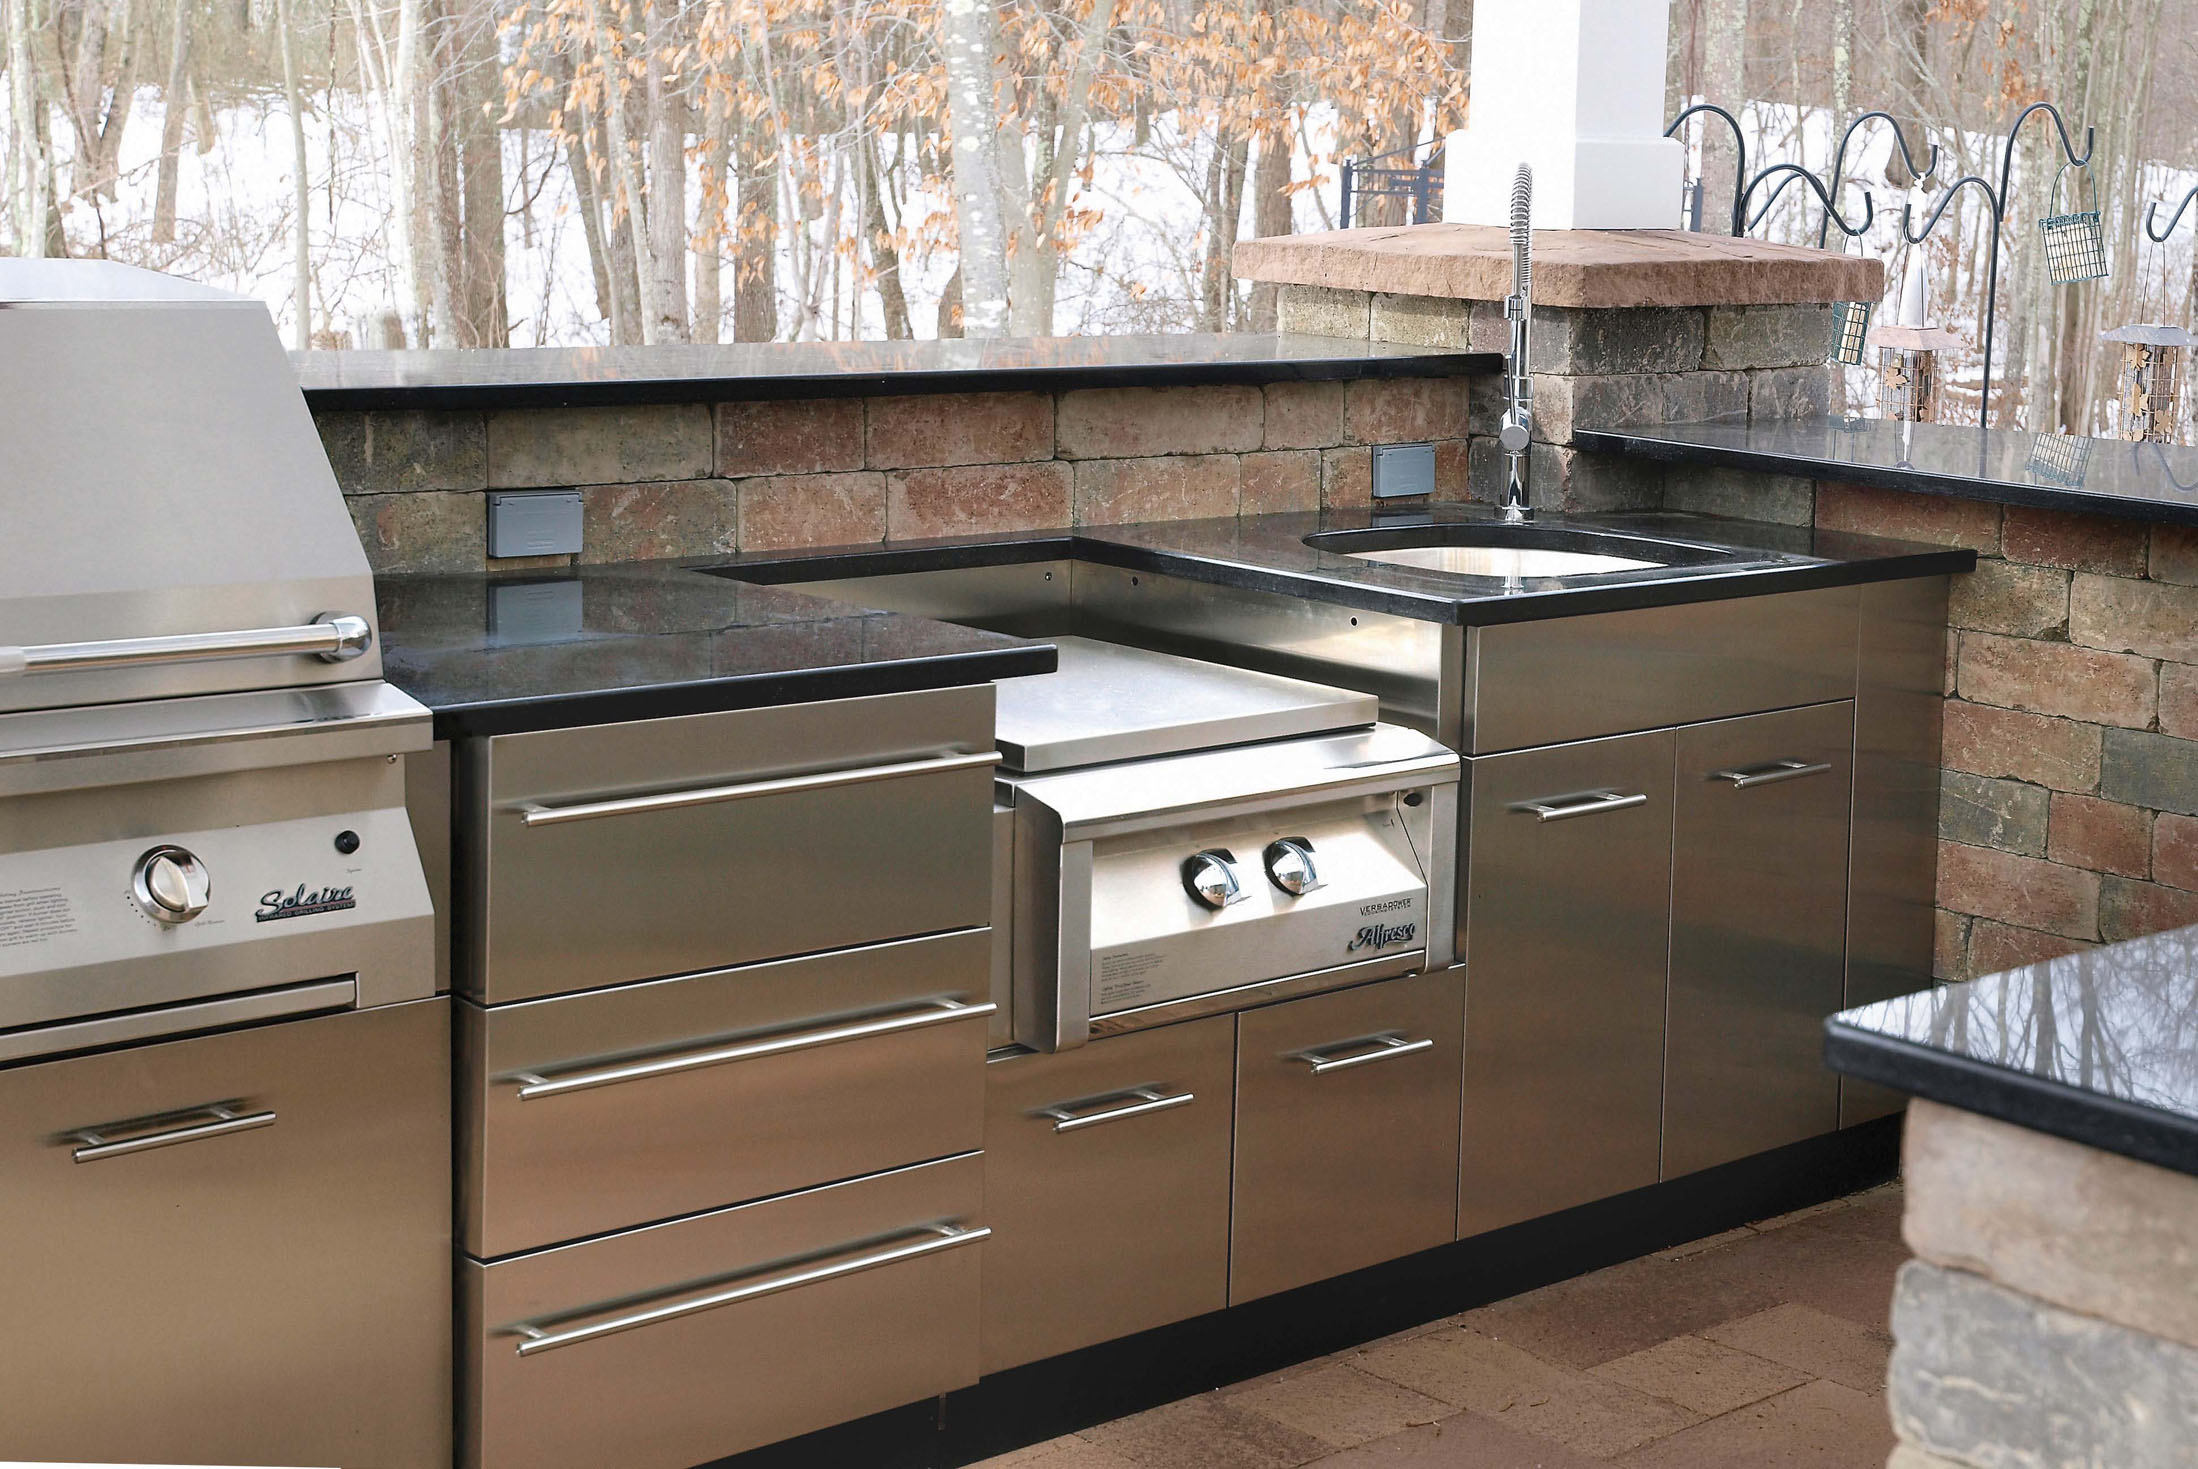 Outdoor Stainless Kitchen In Winter In CT Danver Stainless Steel